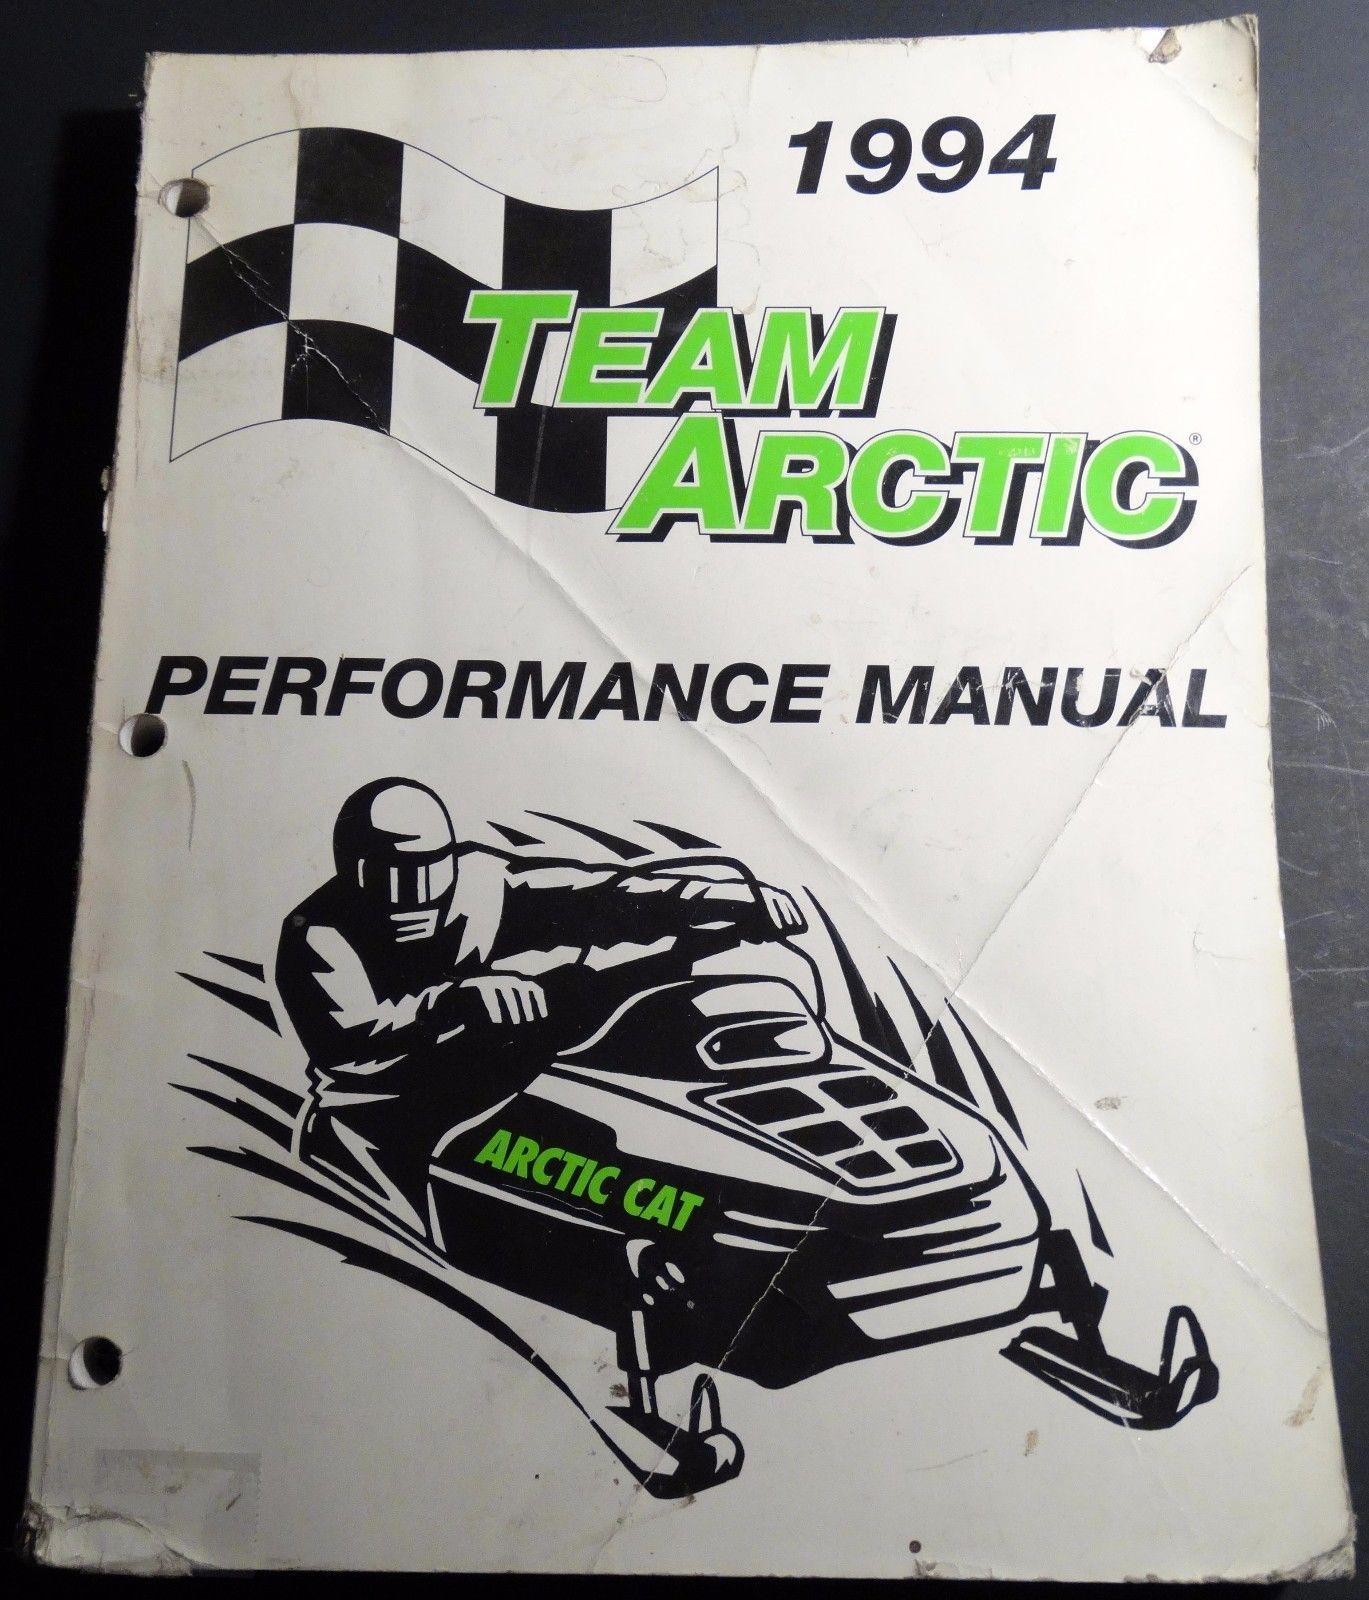 1995 bearcat manual array 1994 arctic cat snowmobile performance service manual p n 2256 016 rh pinterest com fandeluxe